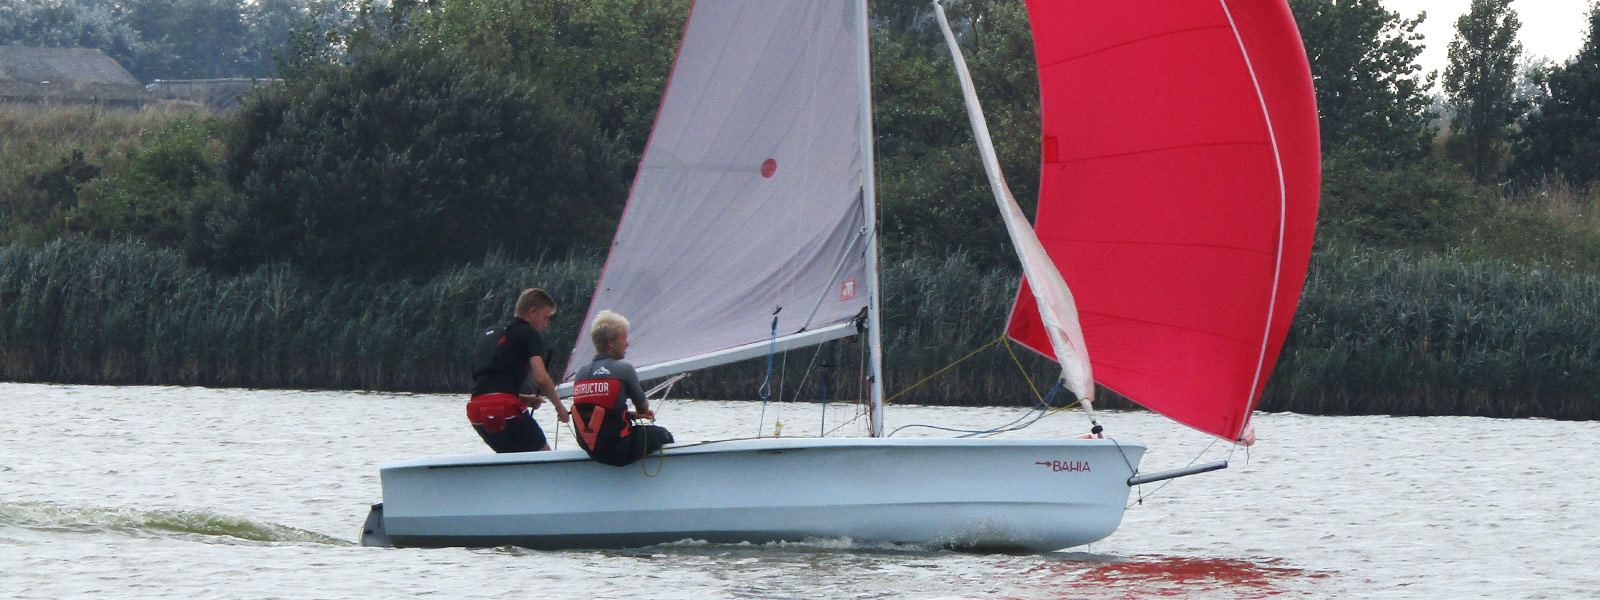 dinghy sailing lessons at rye watersports east sussex